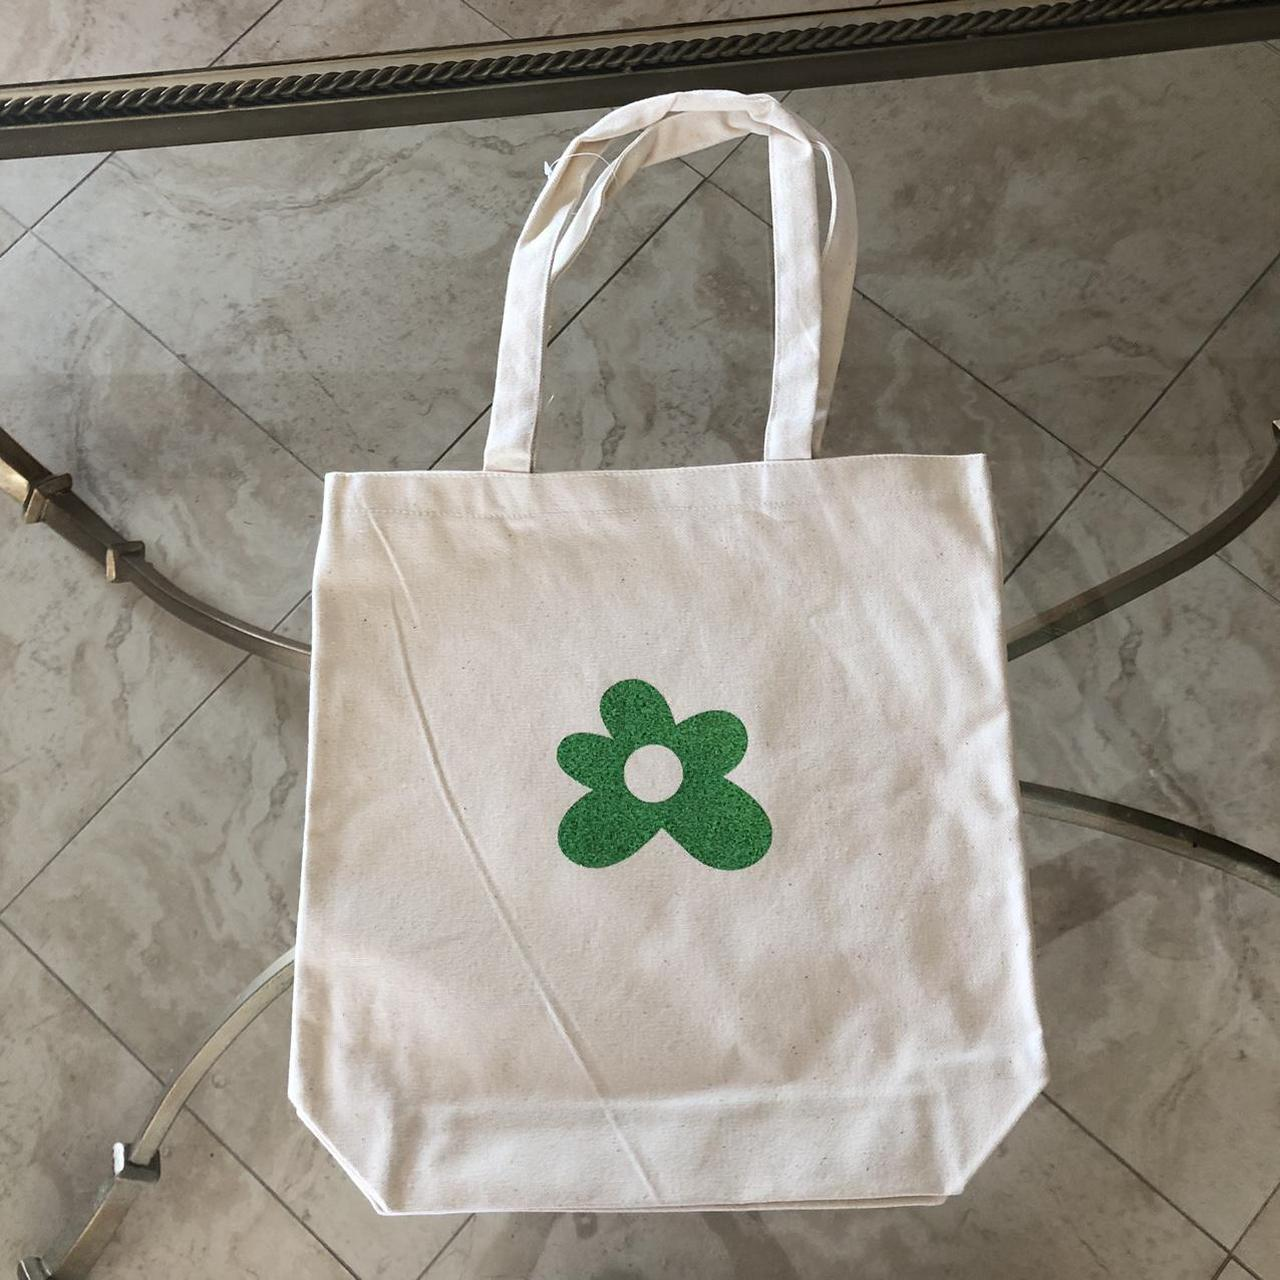 Product Image 1 - -Golf Le Fler inspired tote